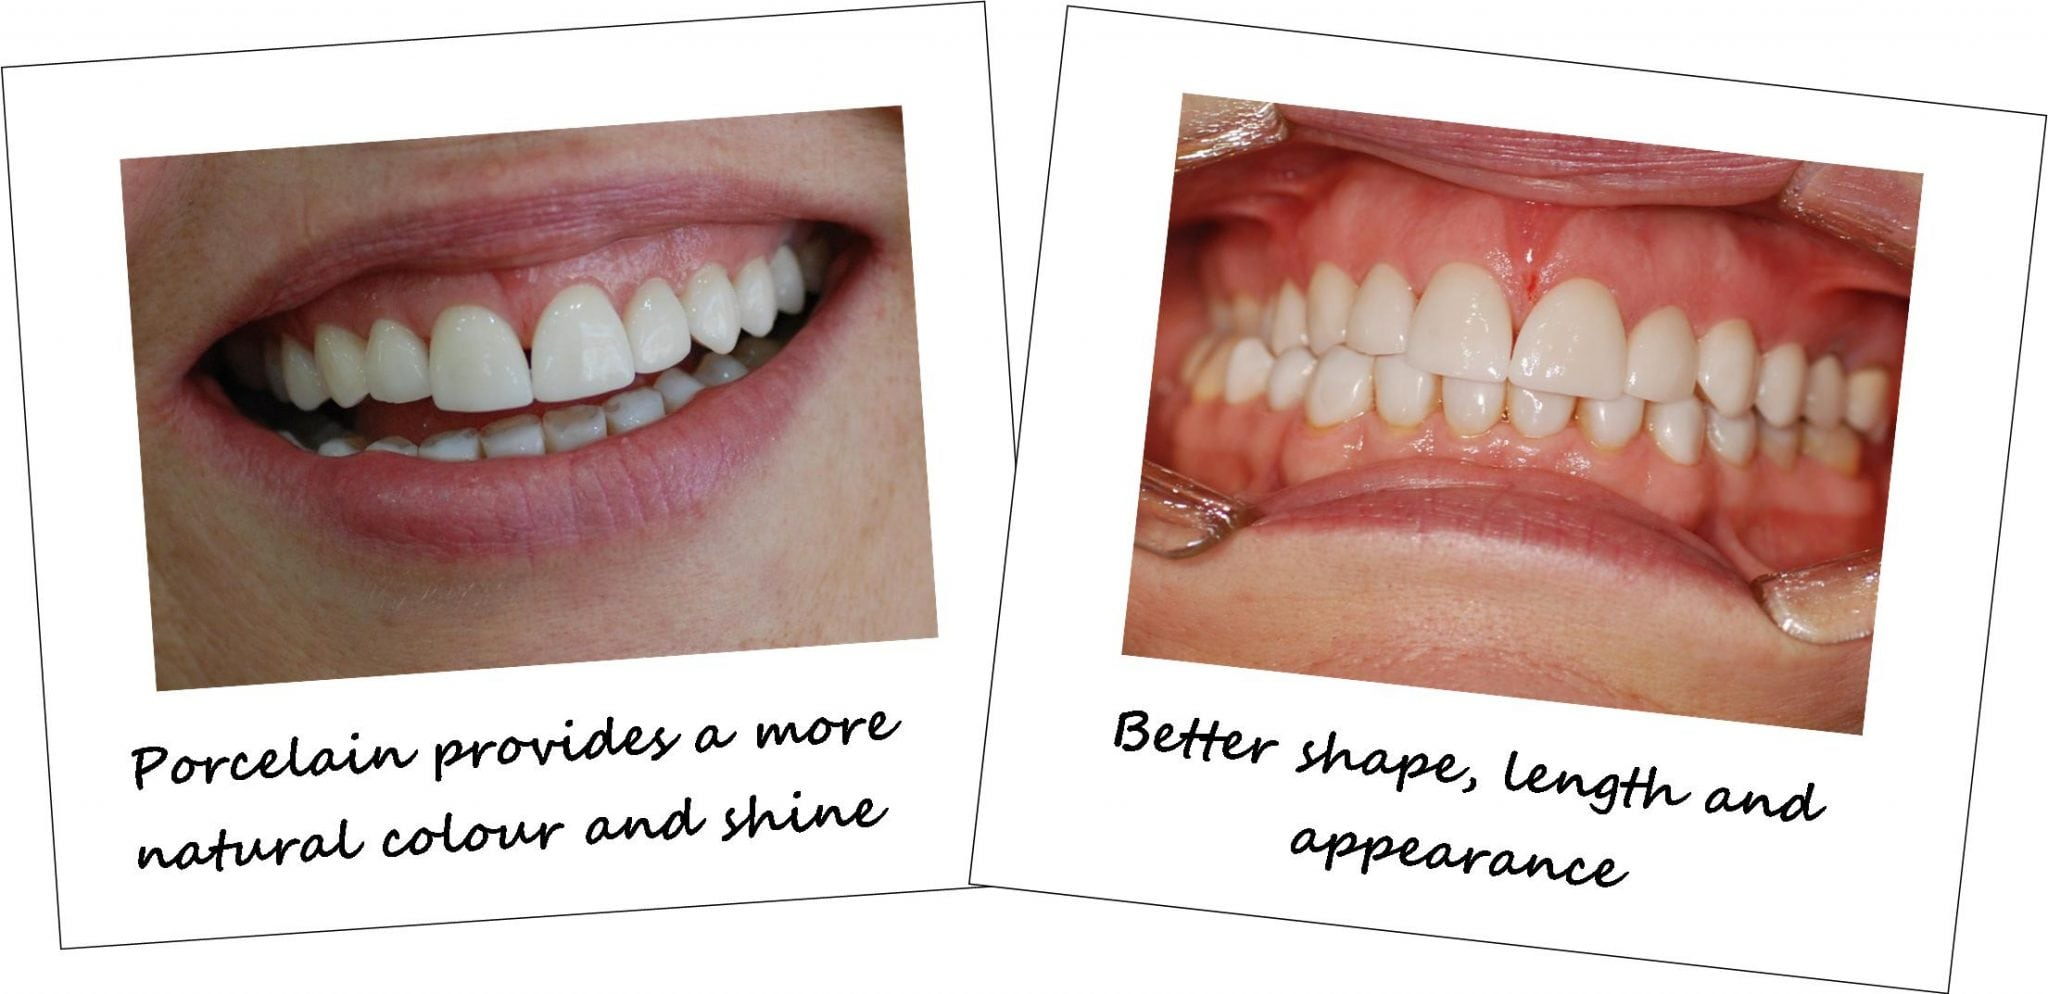 Cosmetic tooth veneers before and after photos